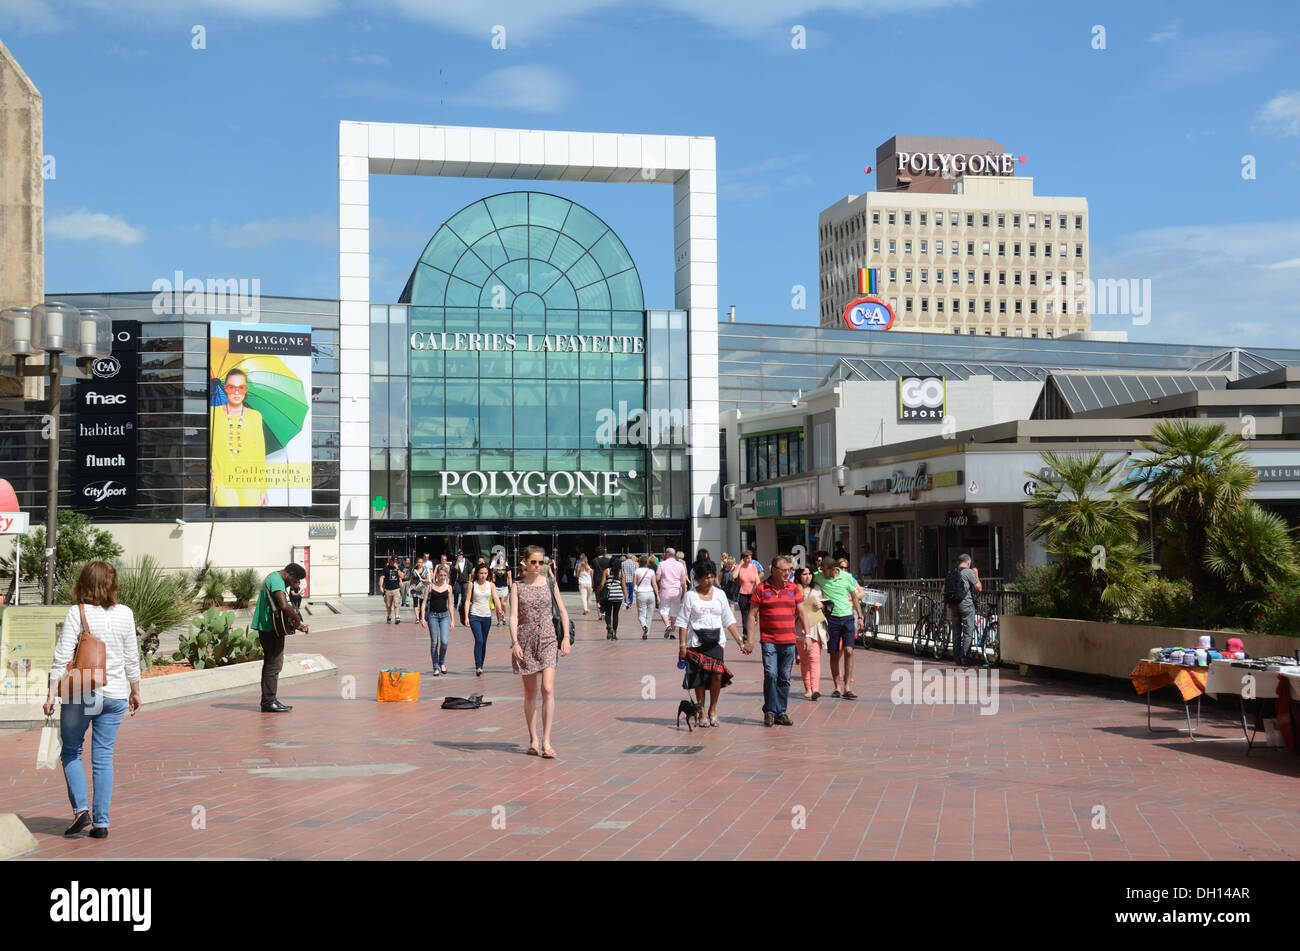 Shoppers Outside Polygone Shopping Center or Shopping Mall Montpellier France - Stock Image